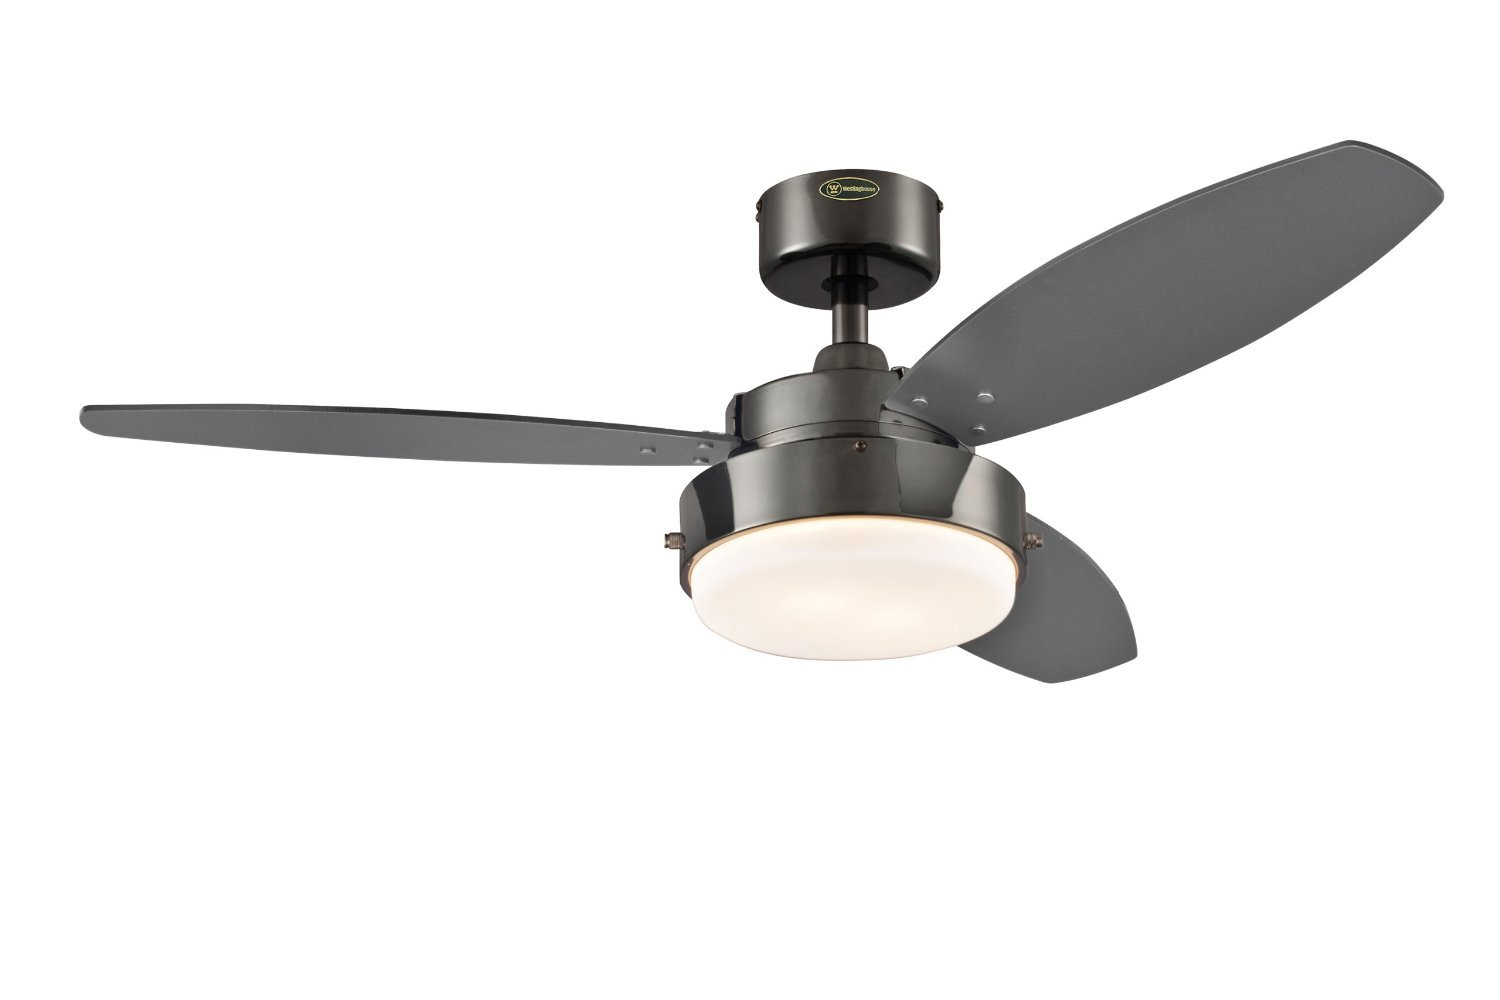 Westinghouse 7801665 comet two light 52 inch reversible five blade westinghouse lighting alloy 42 inch ceiling fan gun metal finish aloadofball